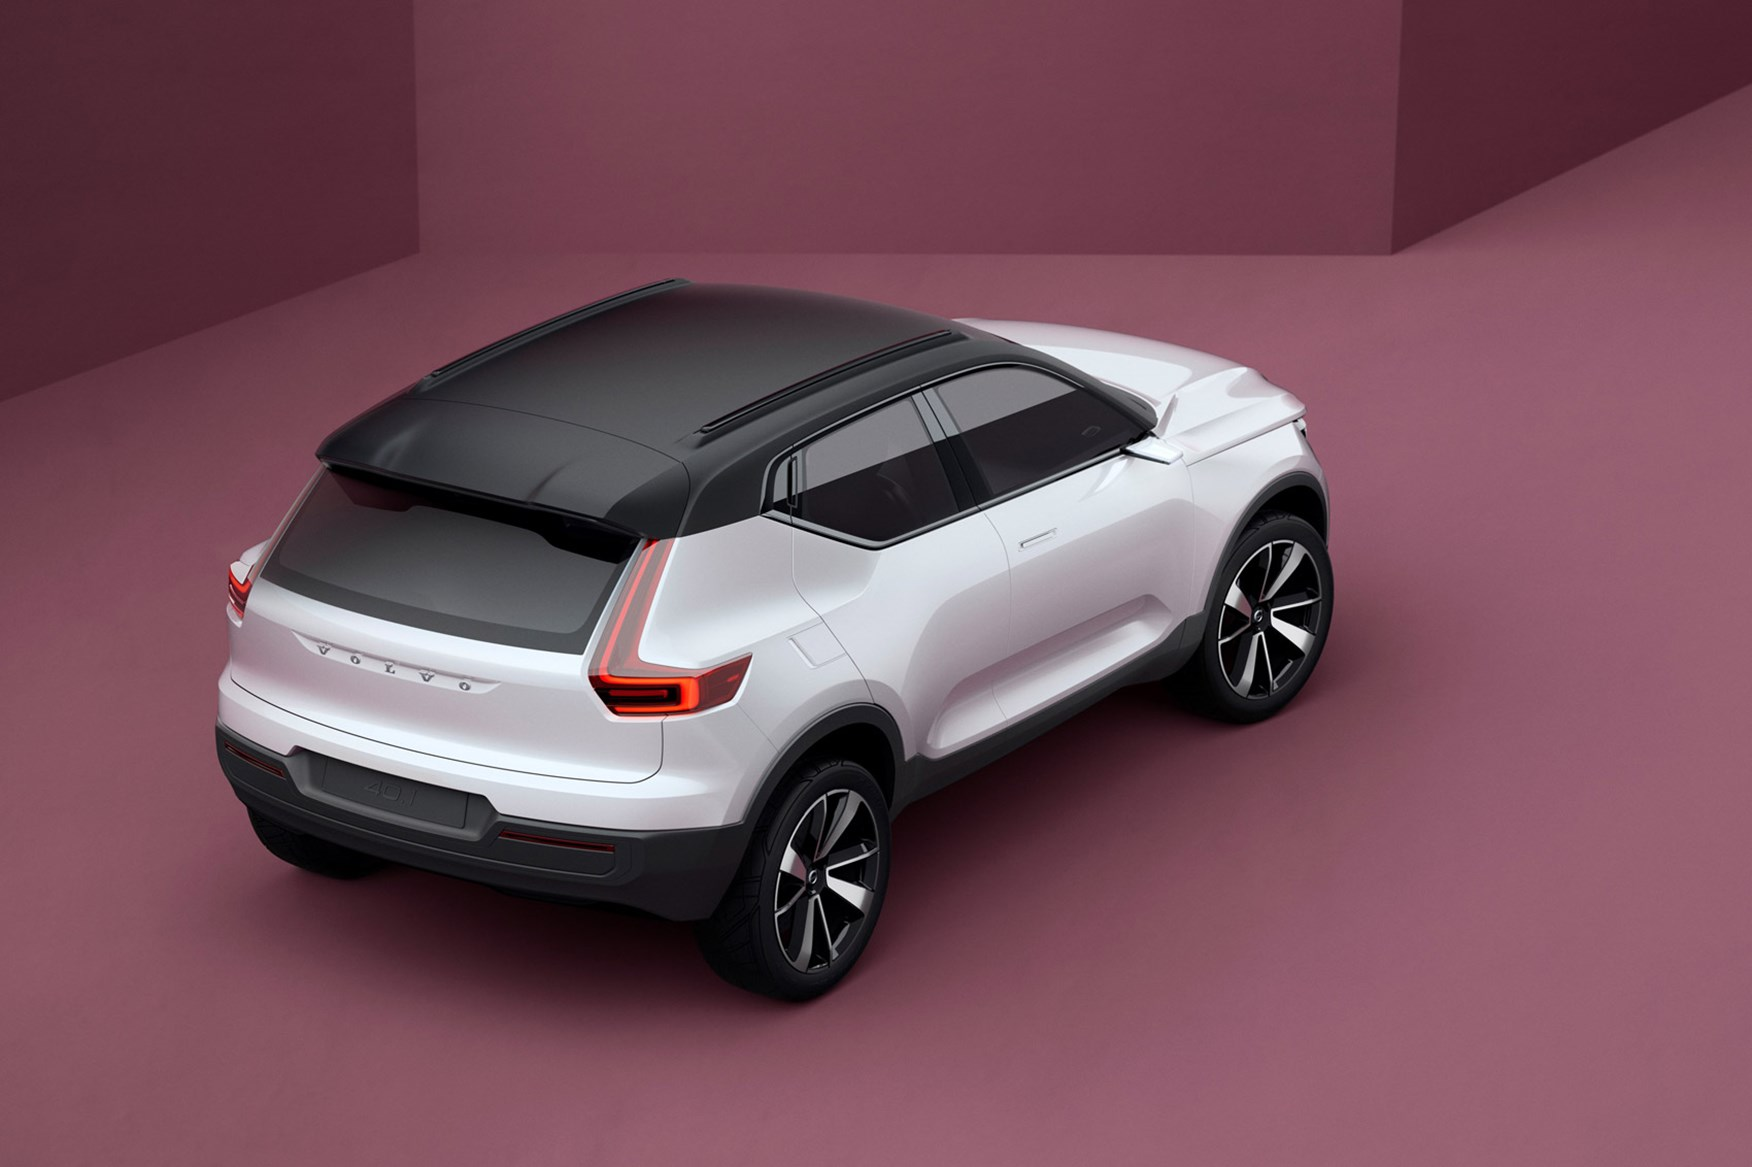 volvo previews new 40 series models with double concept car unveil by car magazine